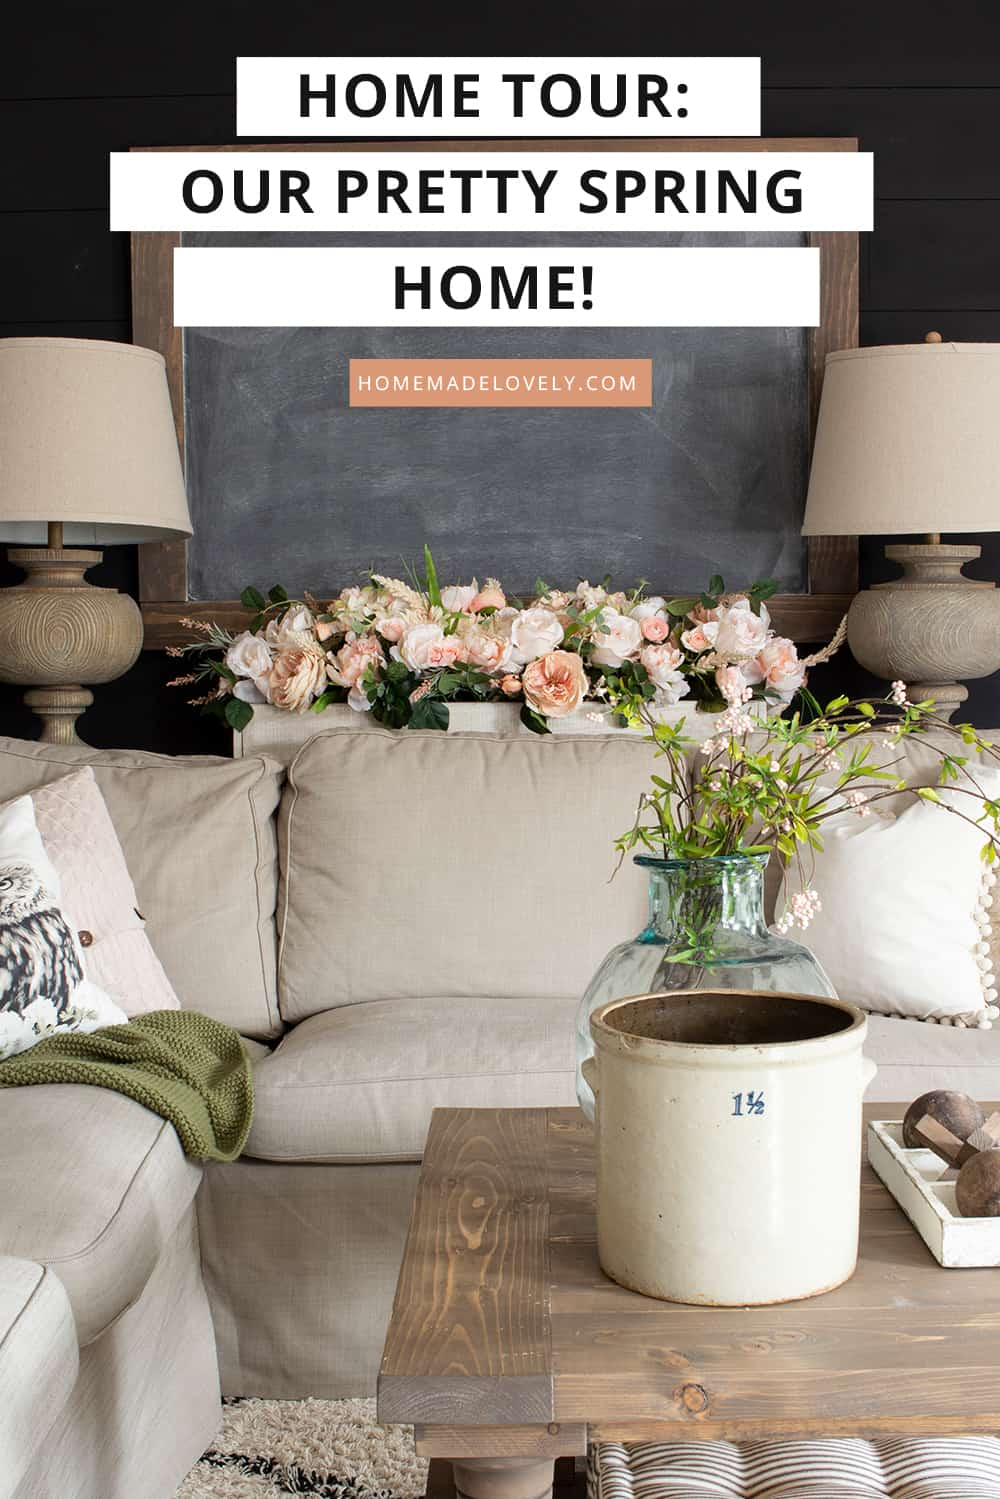 tan couch with pink floral arrangement with text overlay